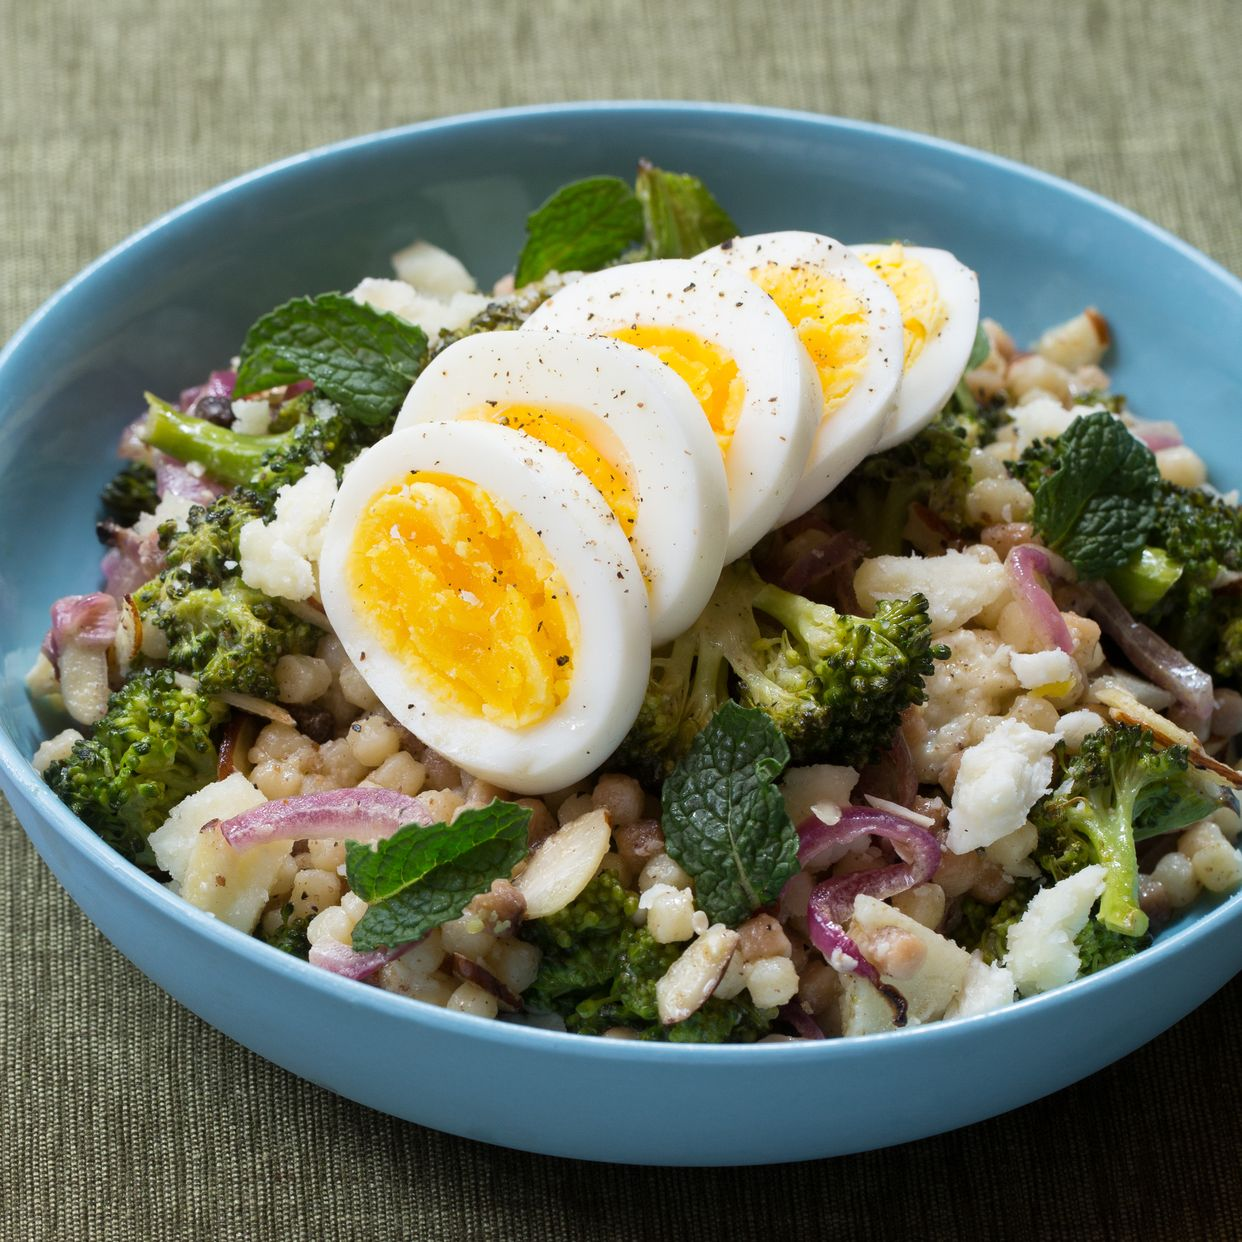 recipes for salads in hard boiled egg diet